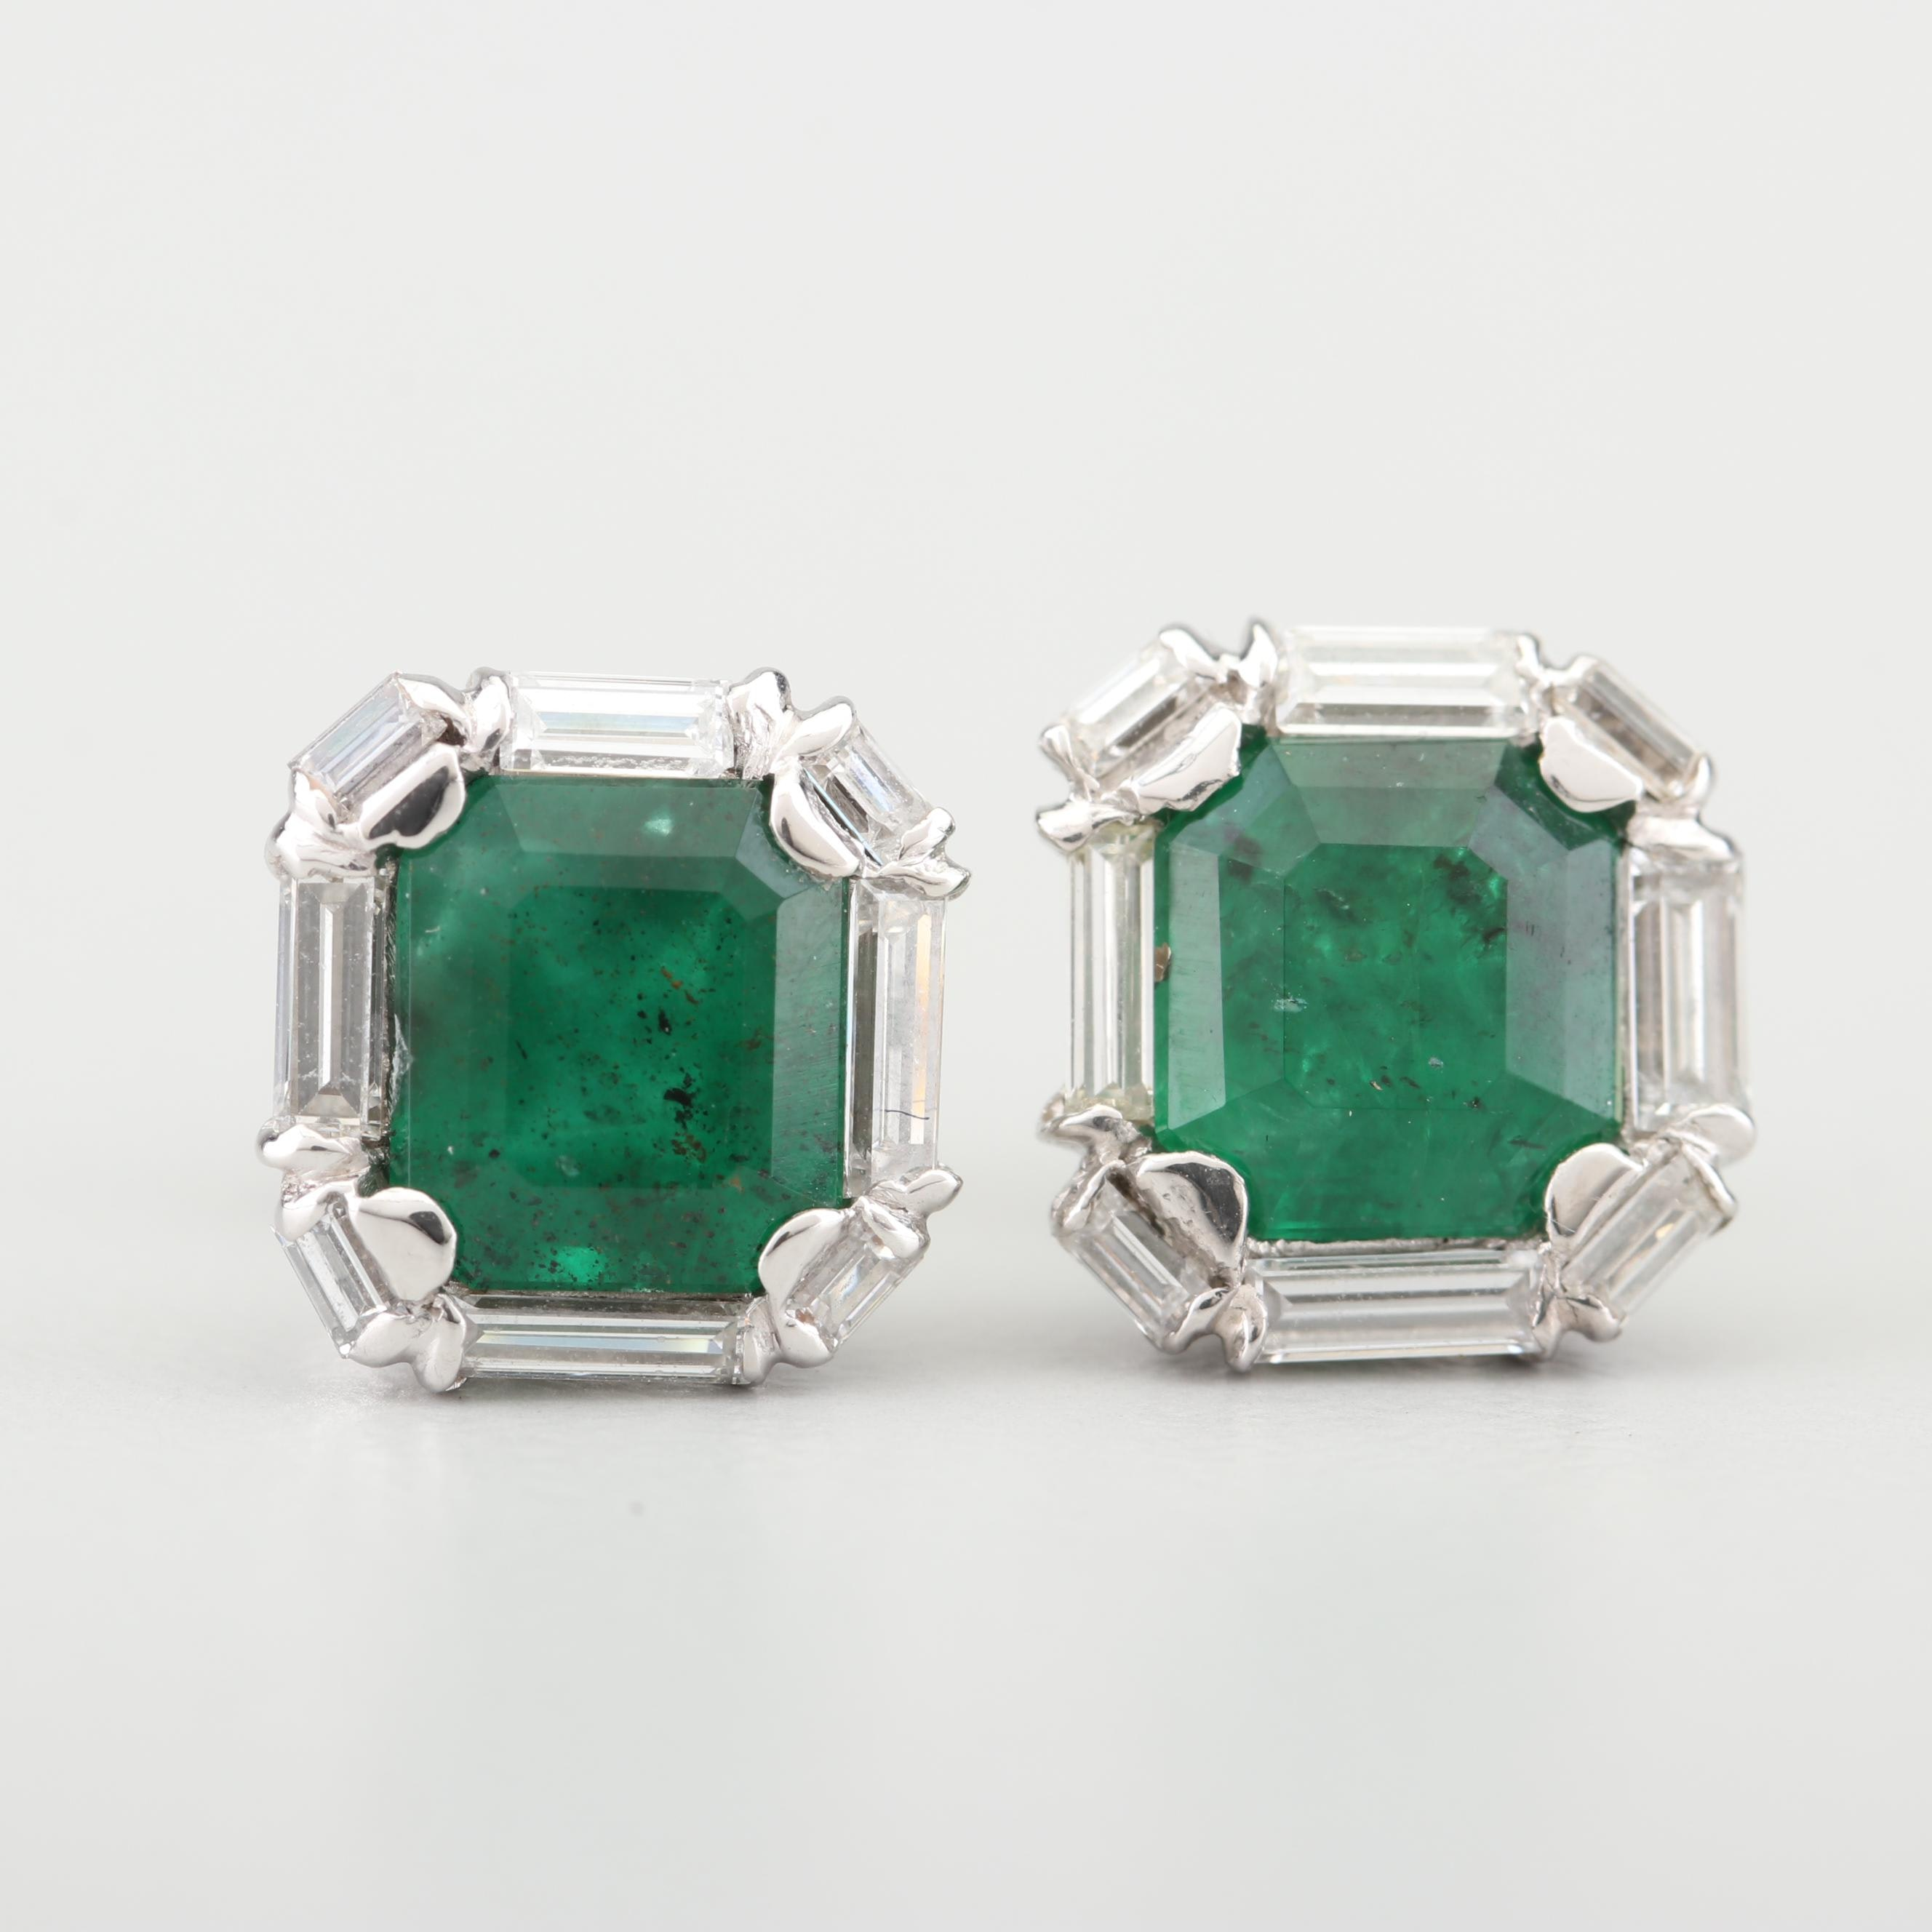 14K White Gold 2.20 CTW Emerald and Diamond Earrings